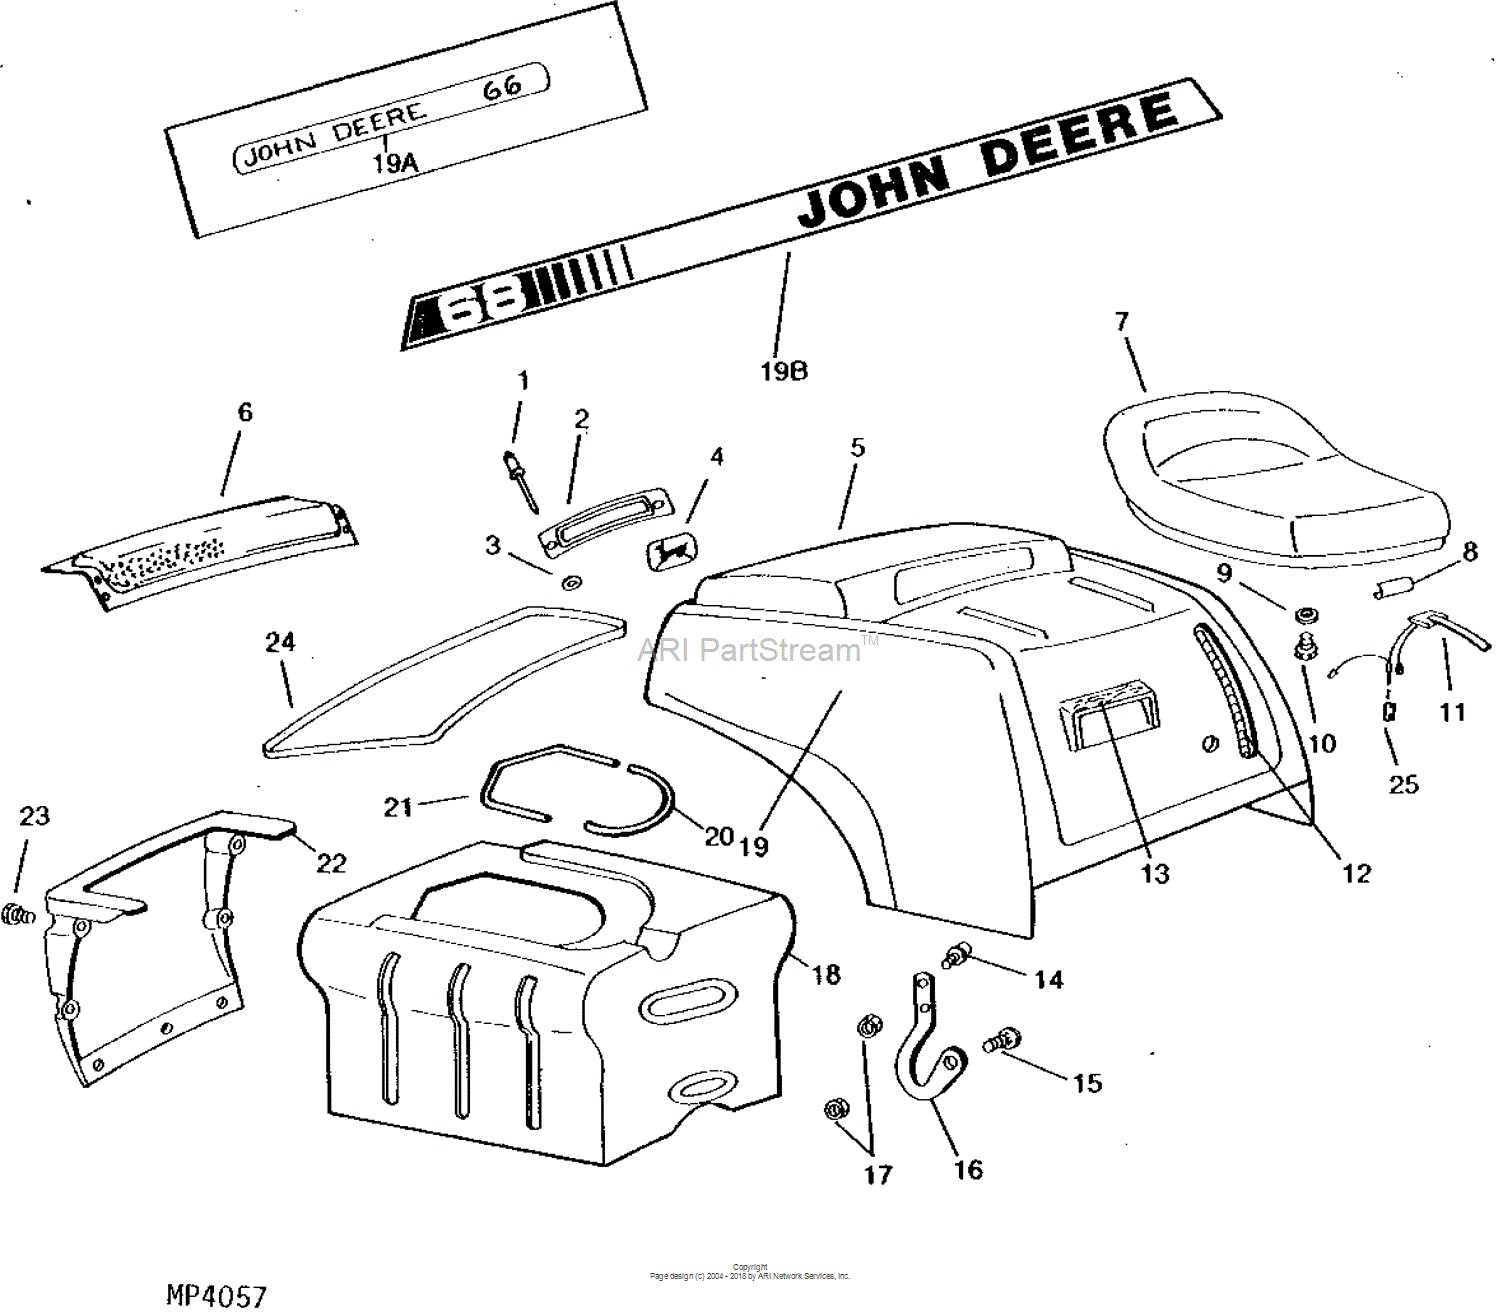 john deere gator engine parts diagram